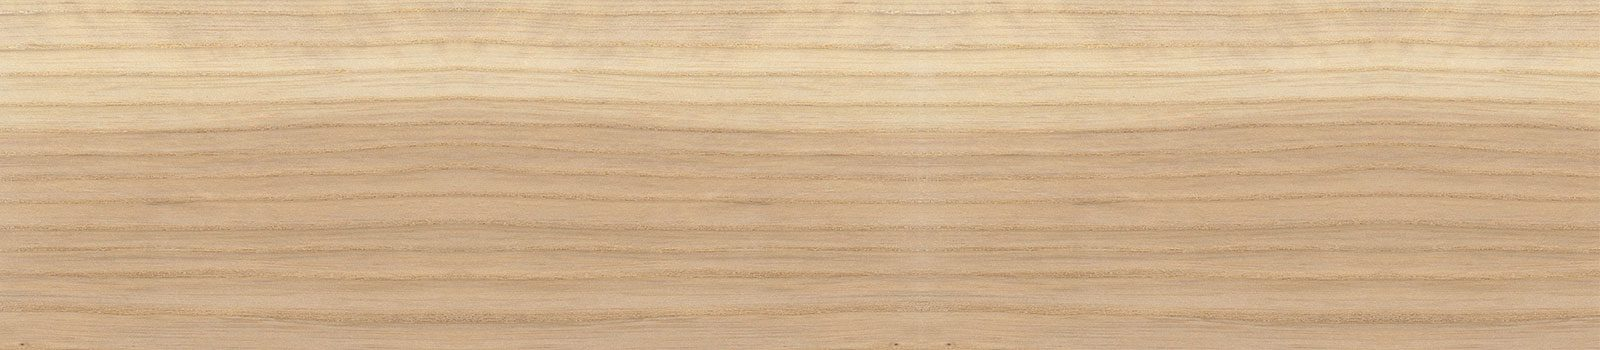 White ash hardwood timber